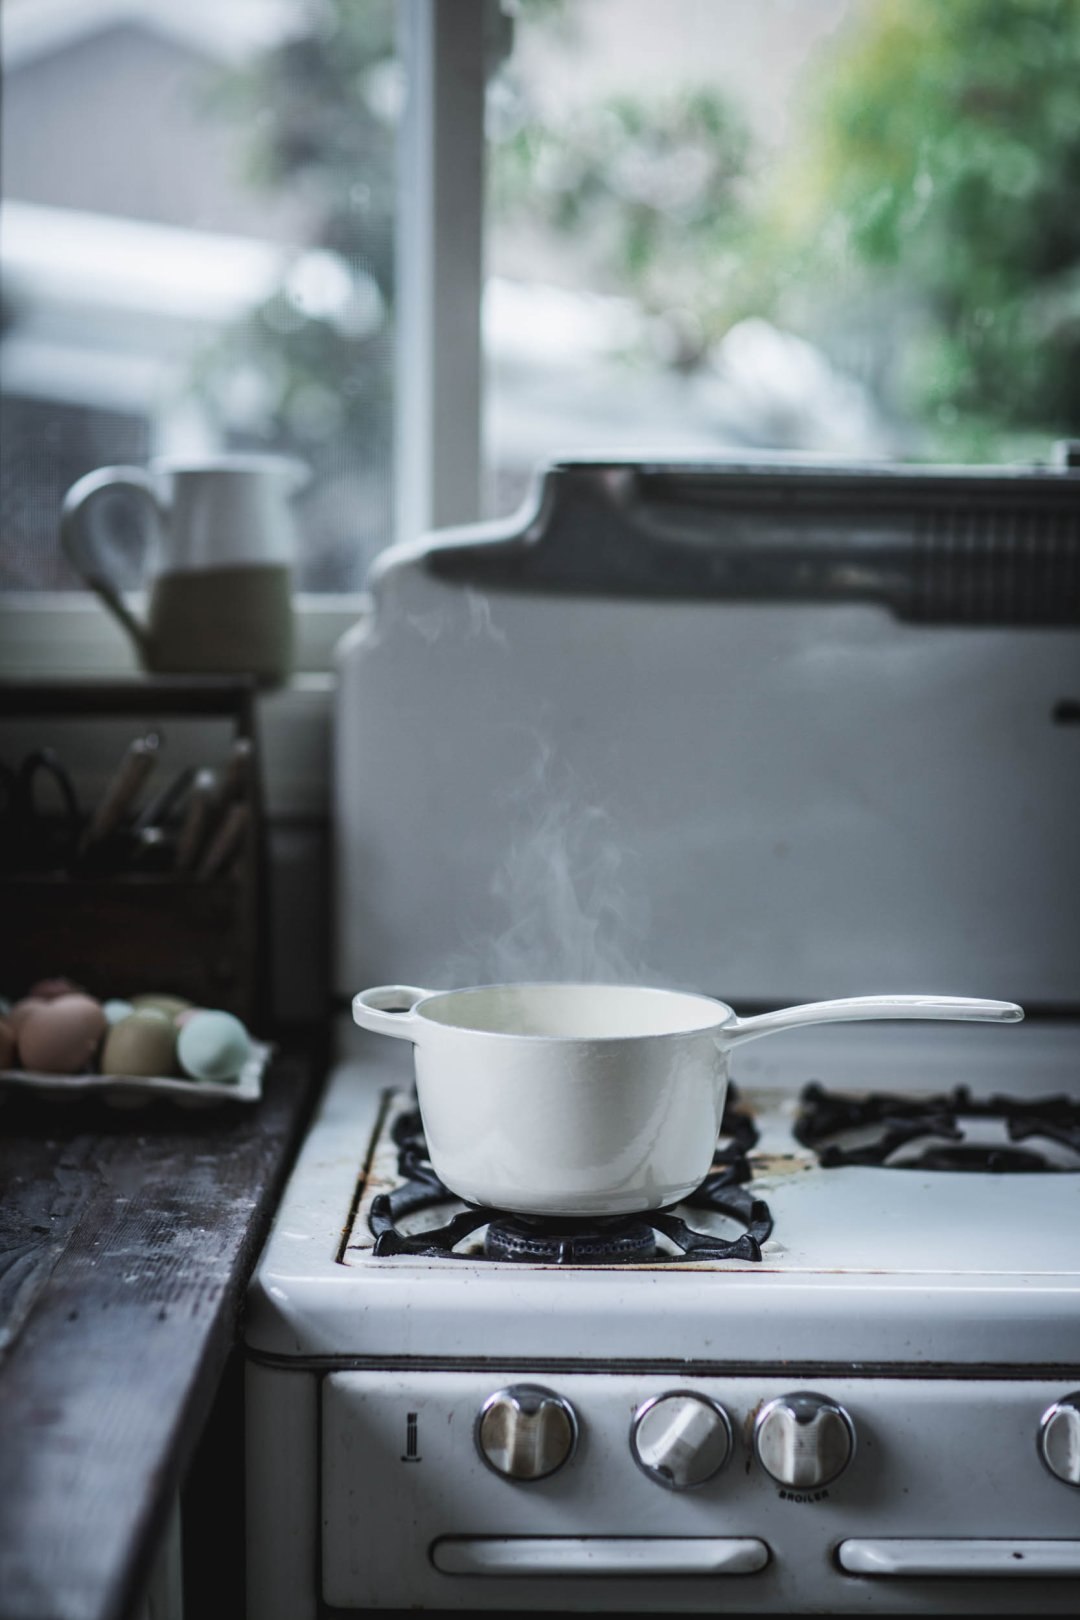 a steaming pot of sauce is cooking on the stovetop in front of a large window